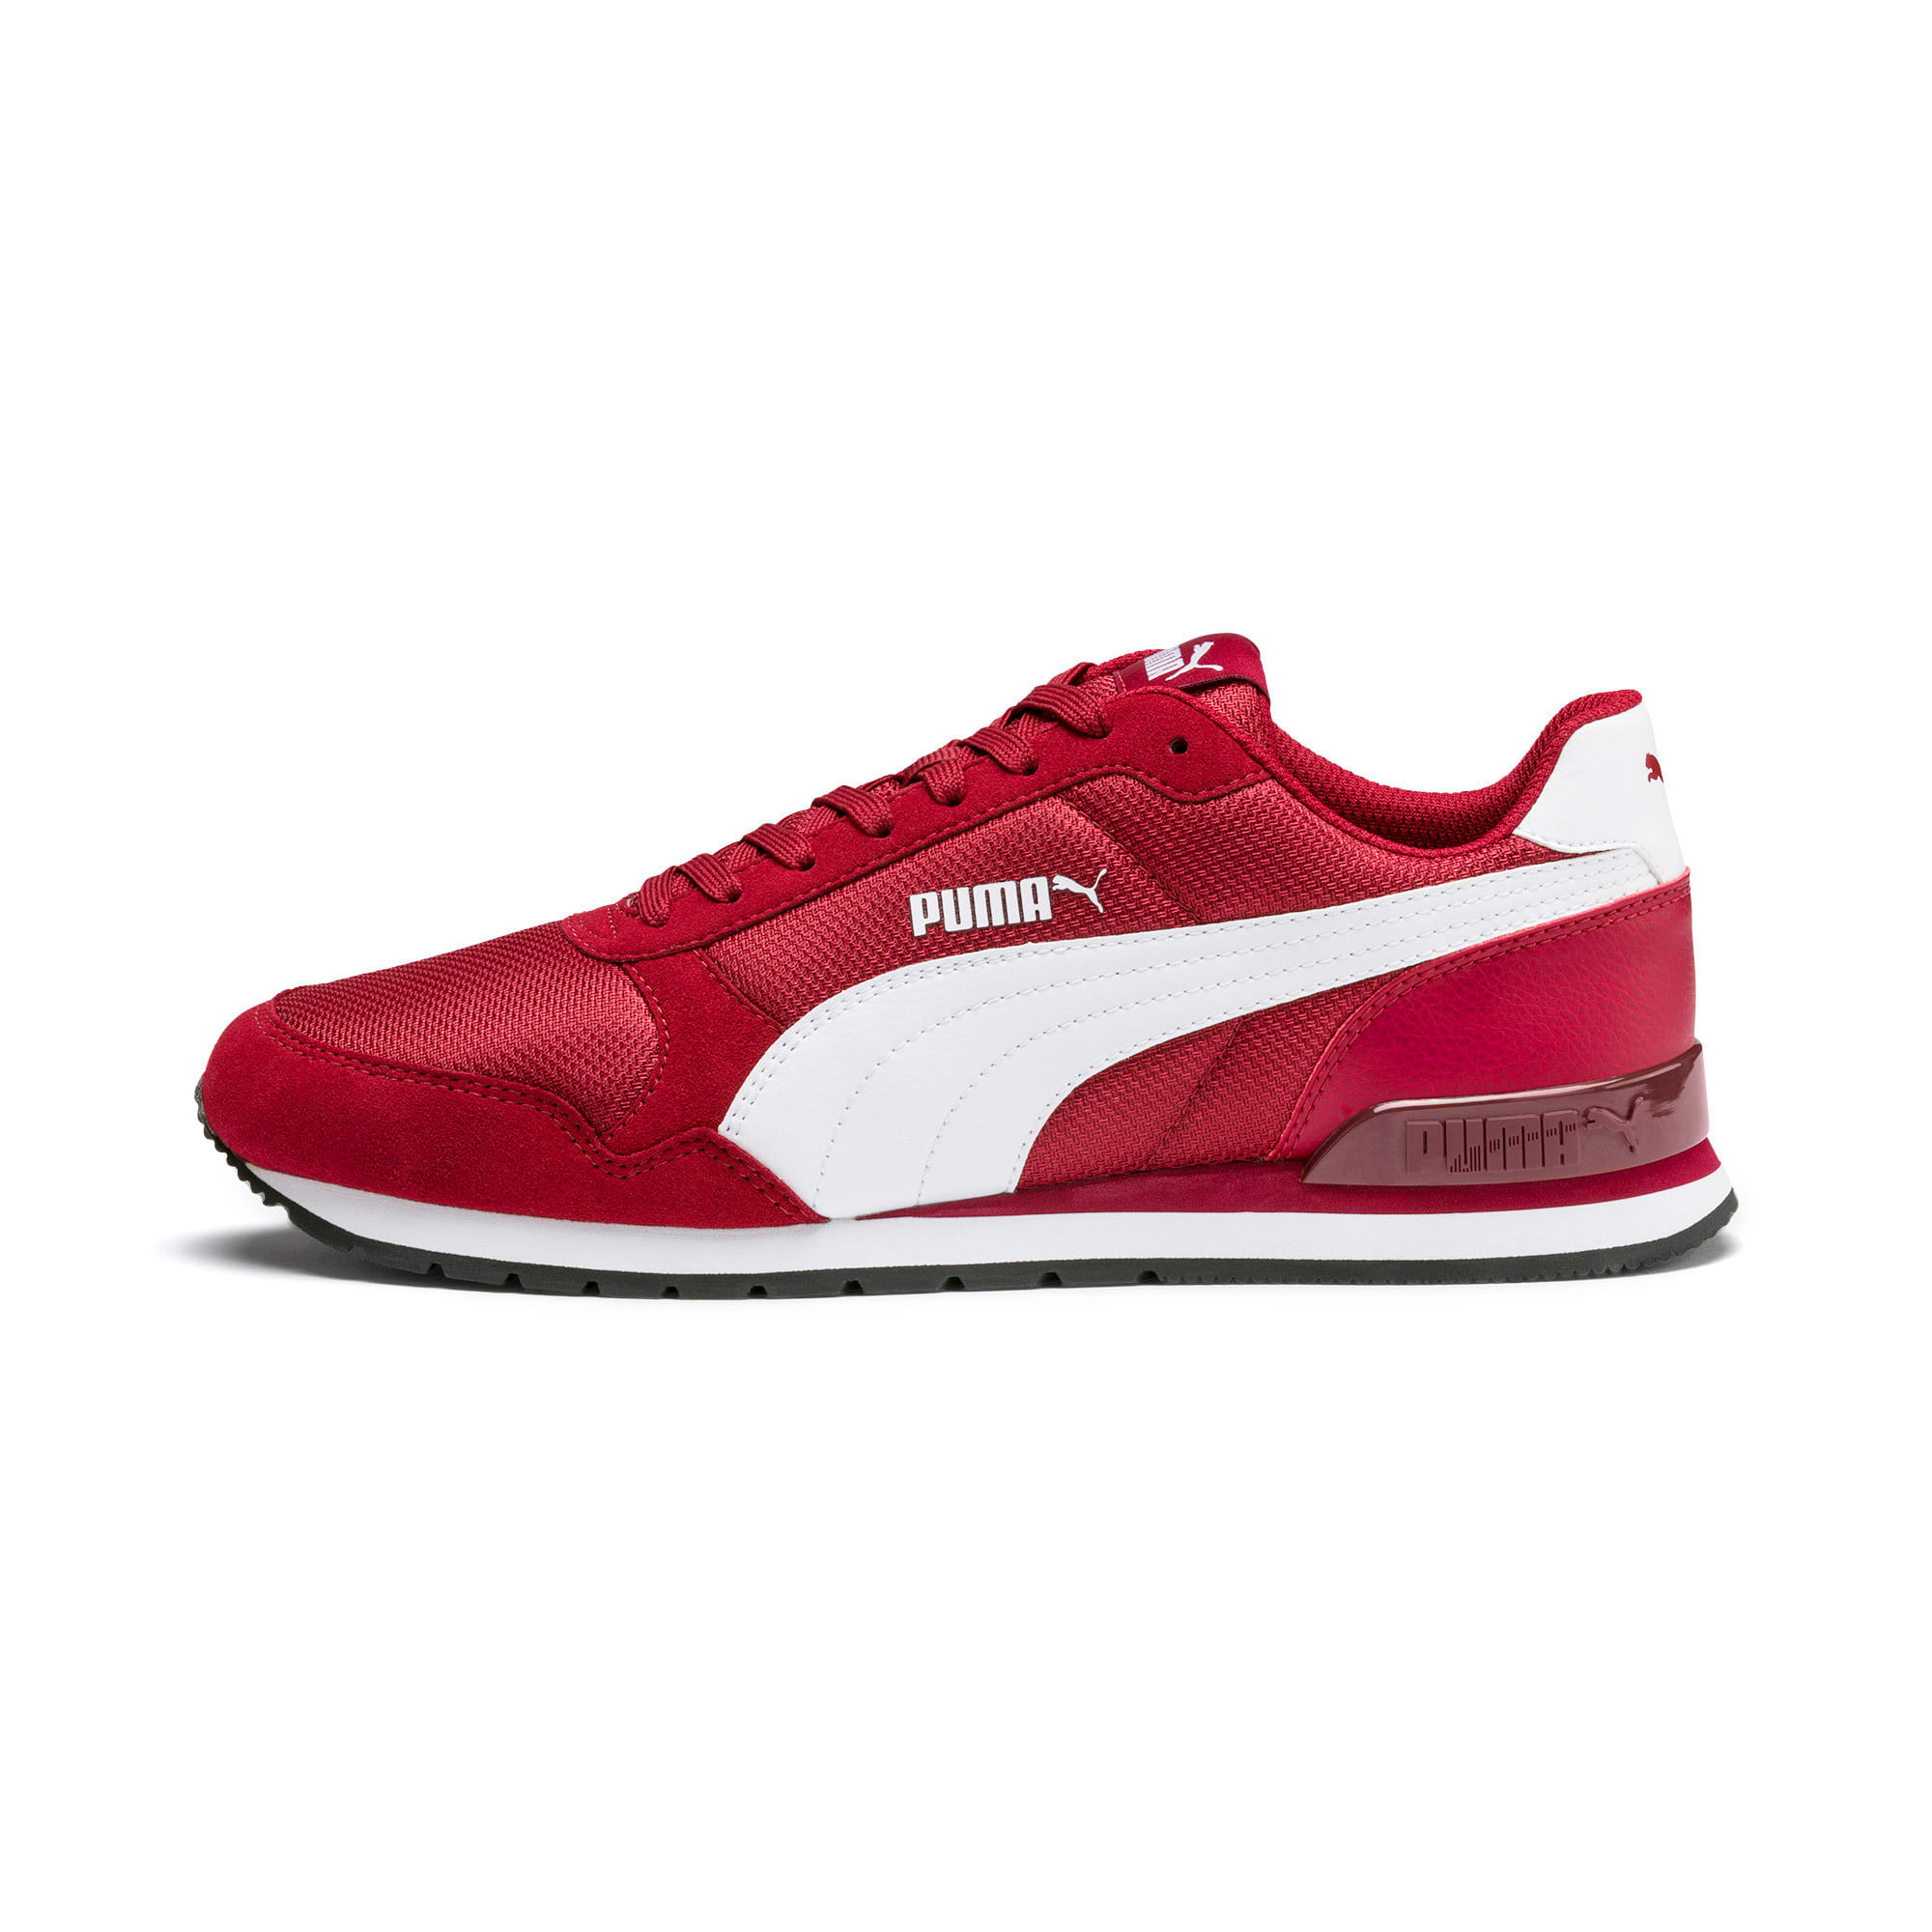 Thumbnail 1 of ST Runner v2 Mesh Sneakers, Rhubarb-Puma White, medium